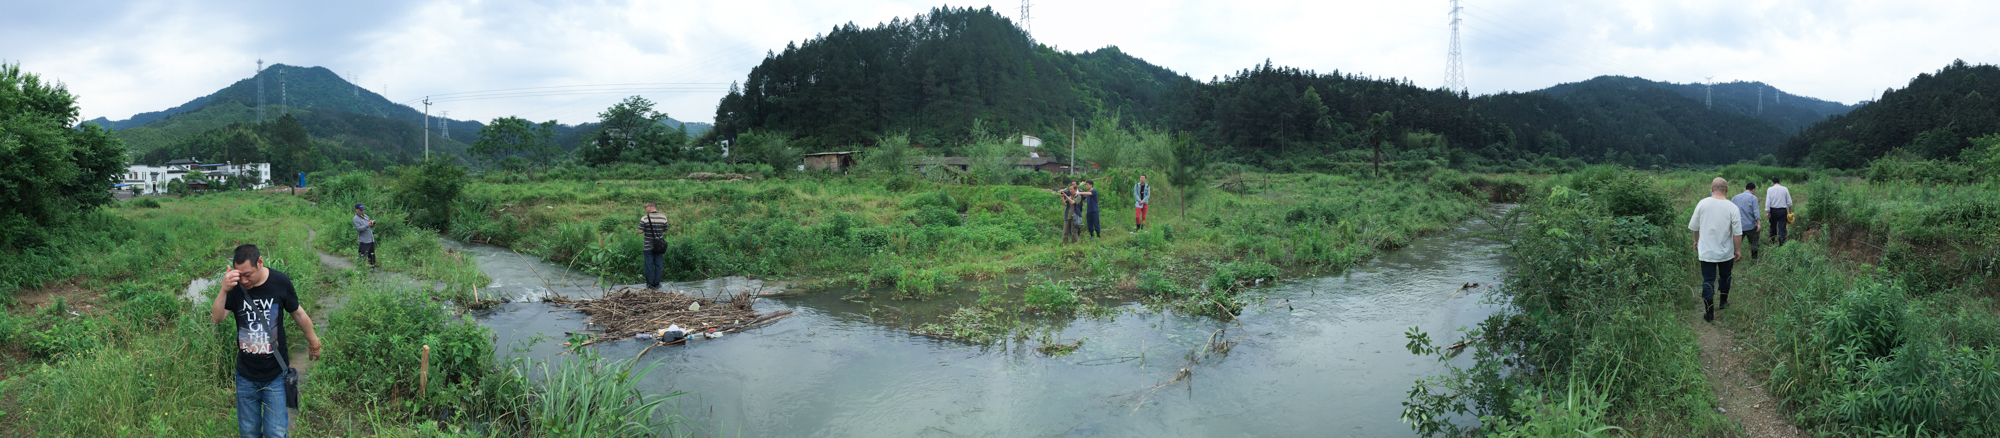 溪水漫溢,地势起伏,草木杂生 Overflowing streams, undulating terrains, and luxuriant vegetations.jpg